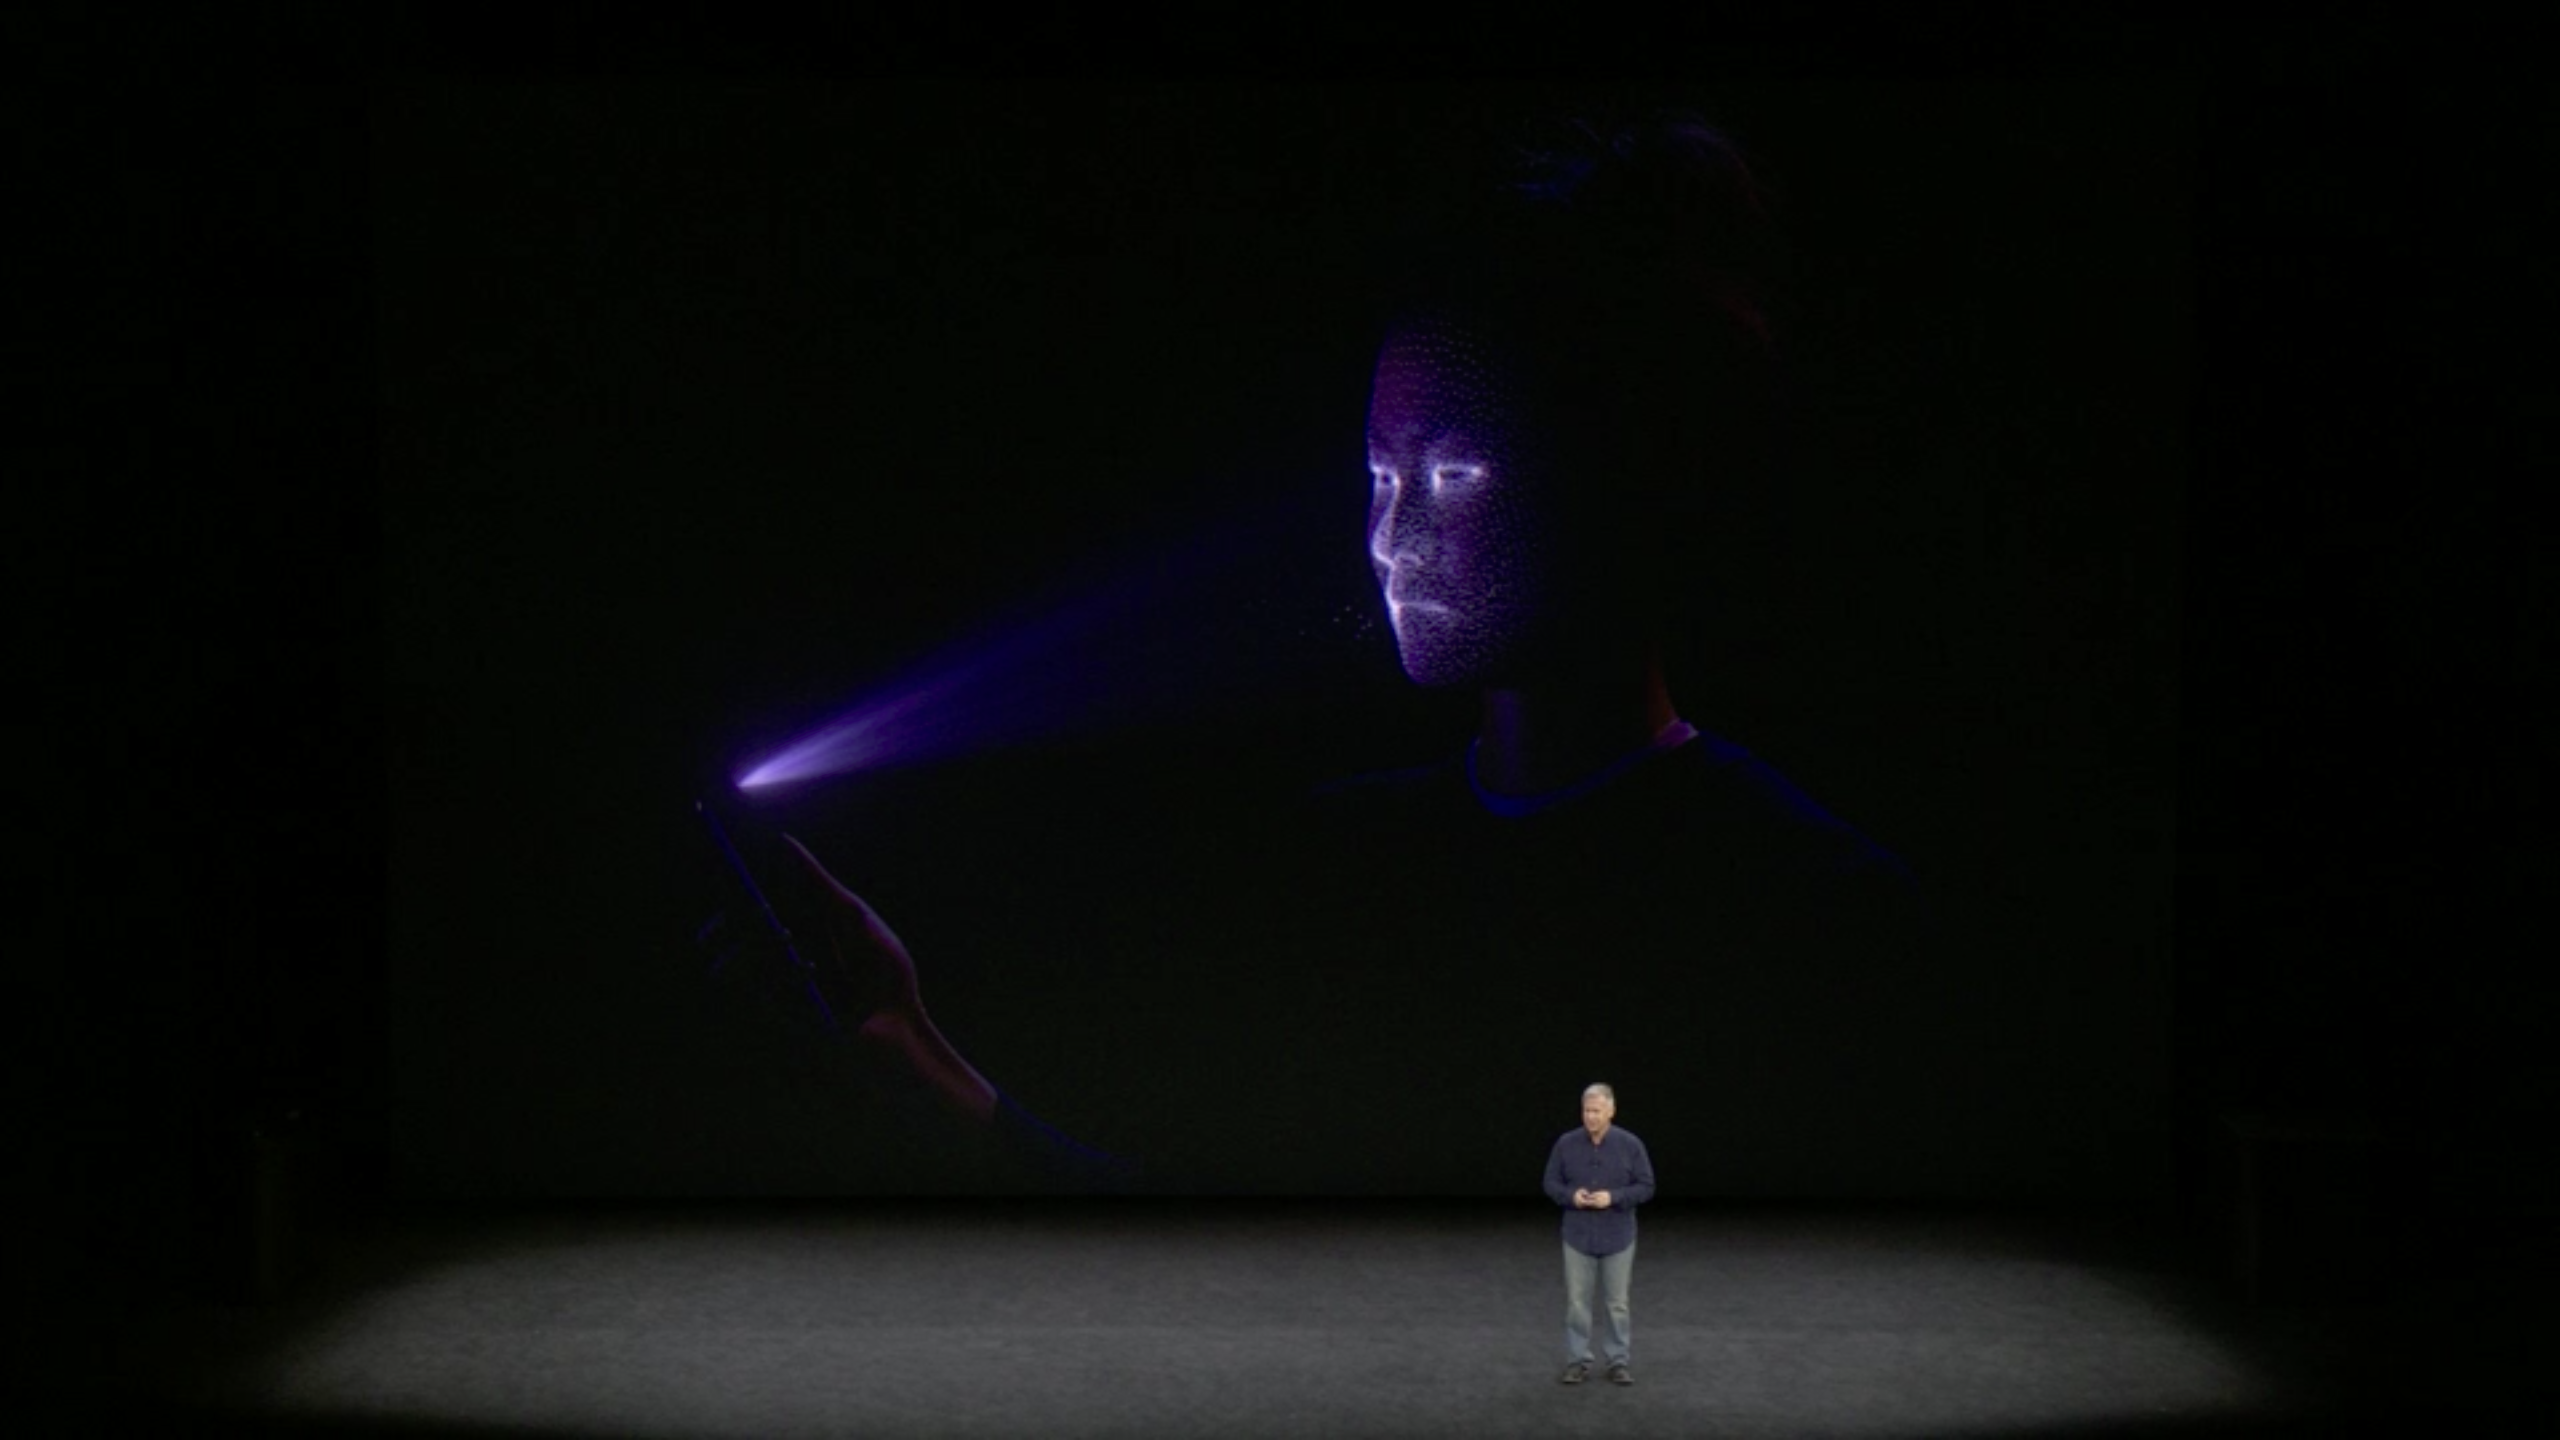 Apple iPhone X Cupertino Event September 12, 2017